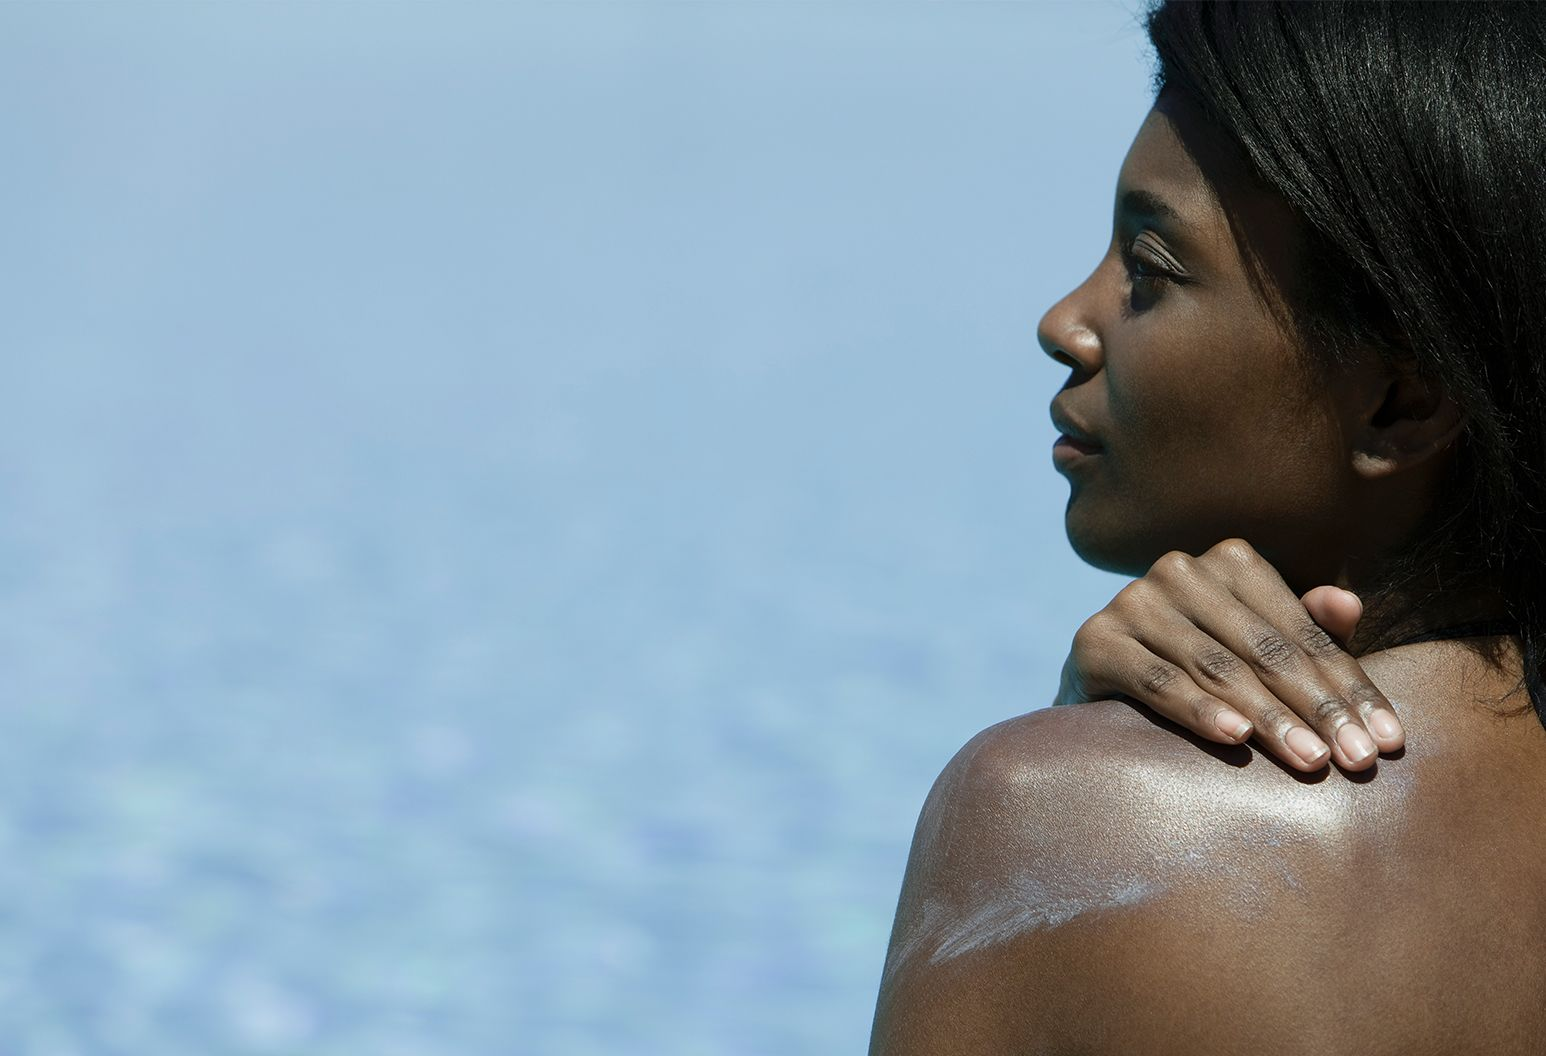 GettyImages- mulher negra protetor solar